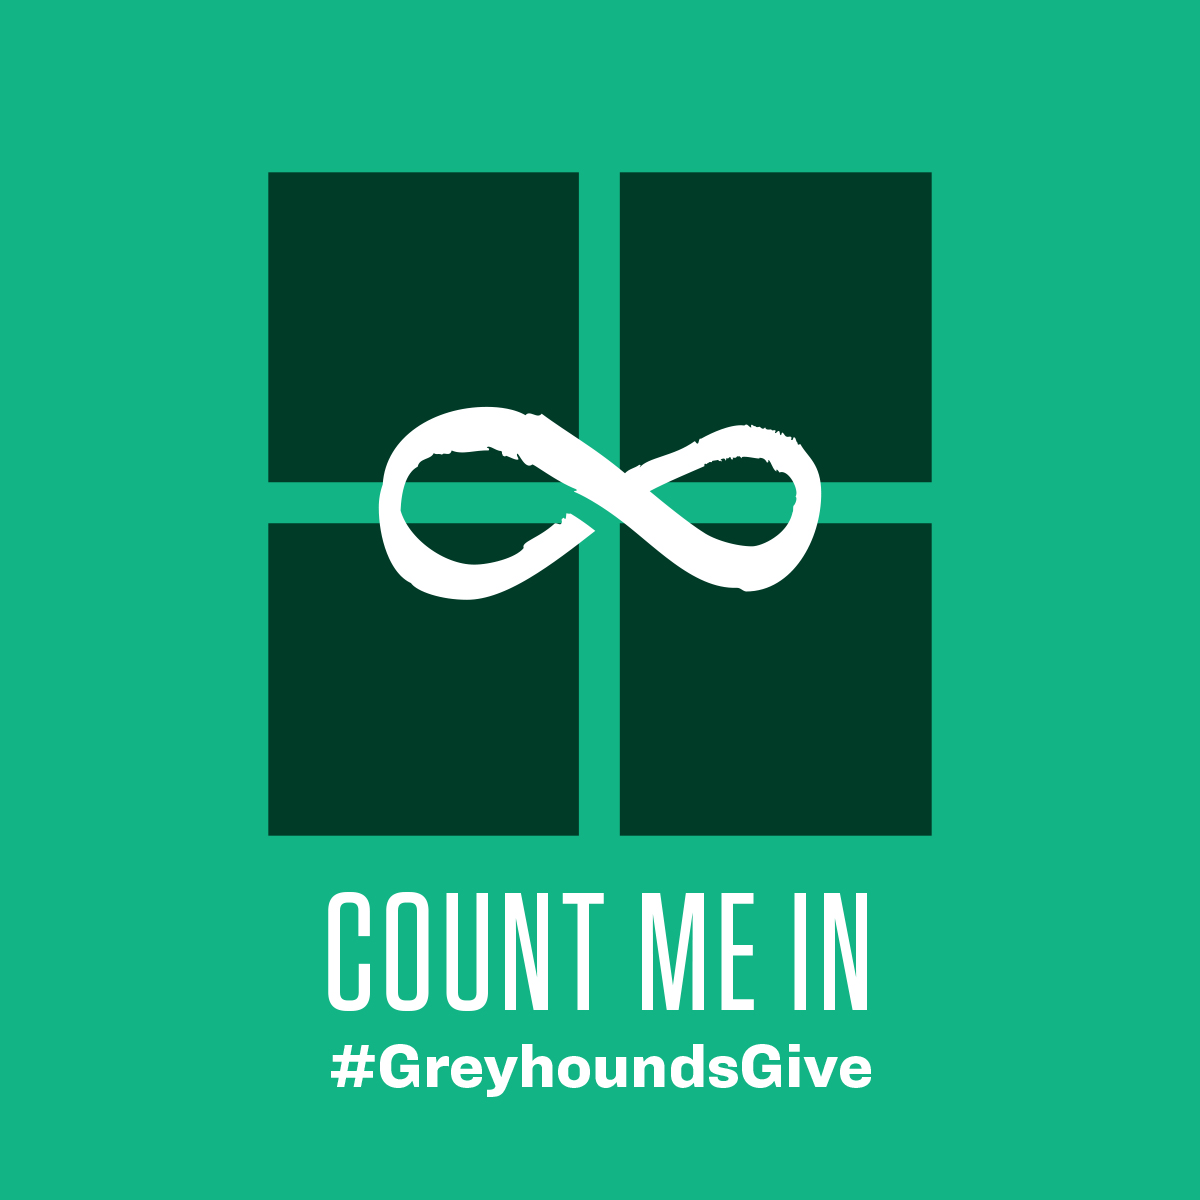 Greyhounds Give sharing image - count me in gift box